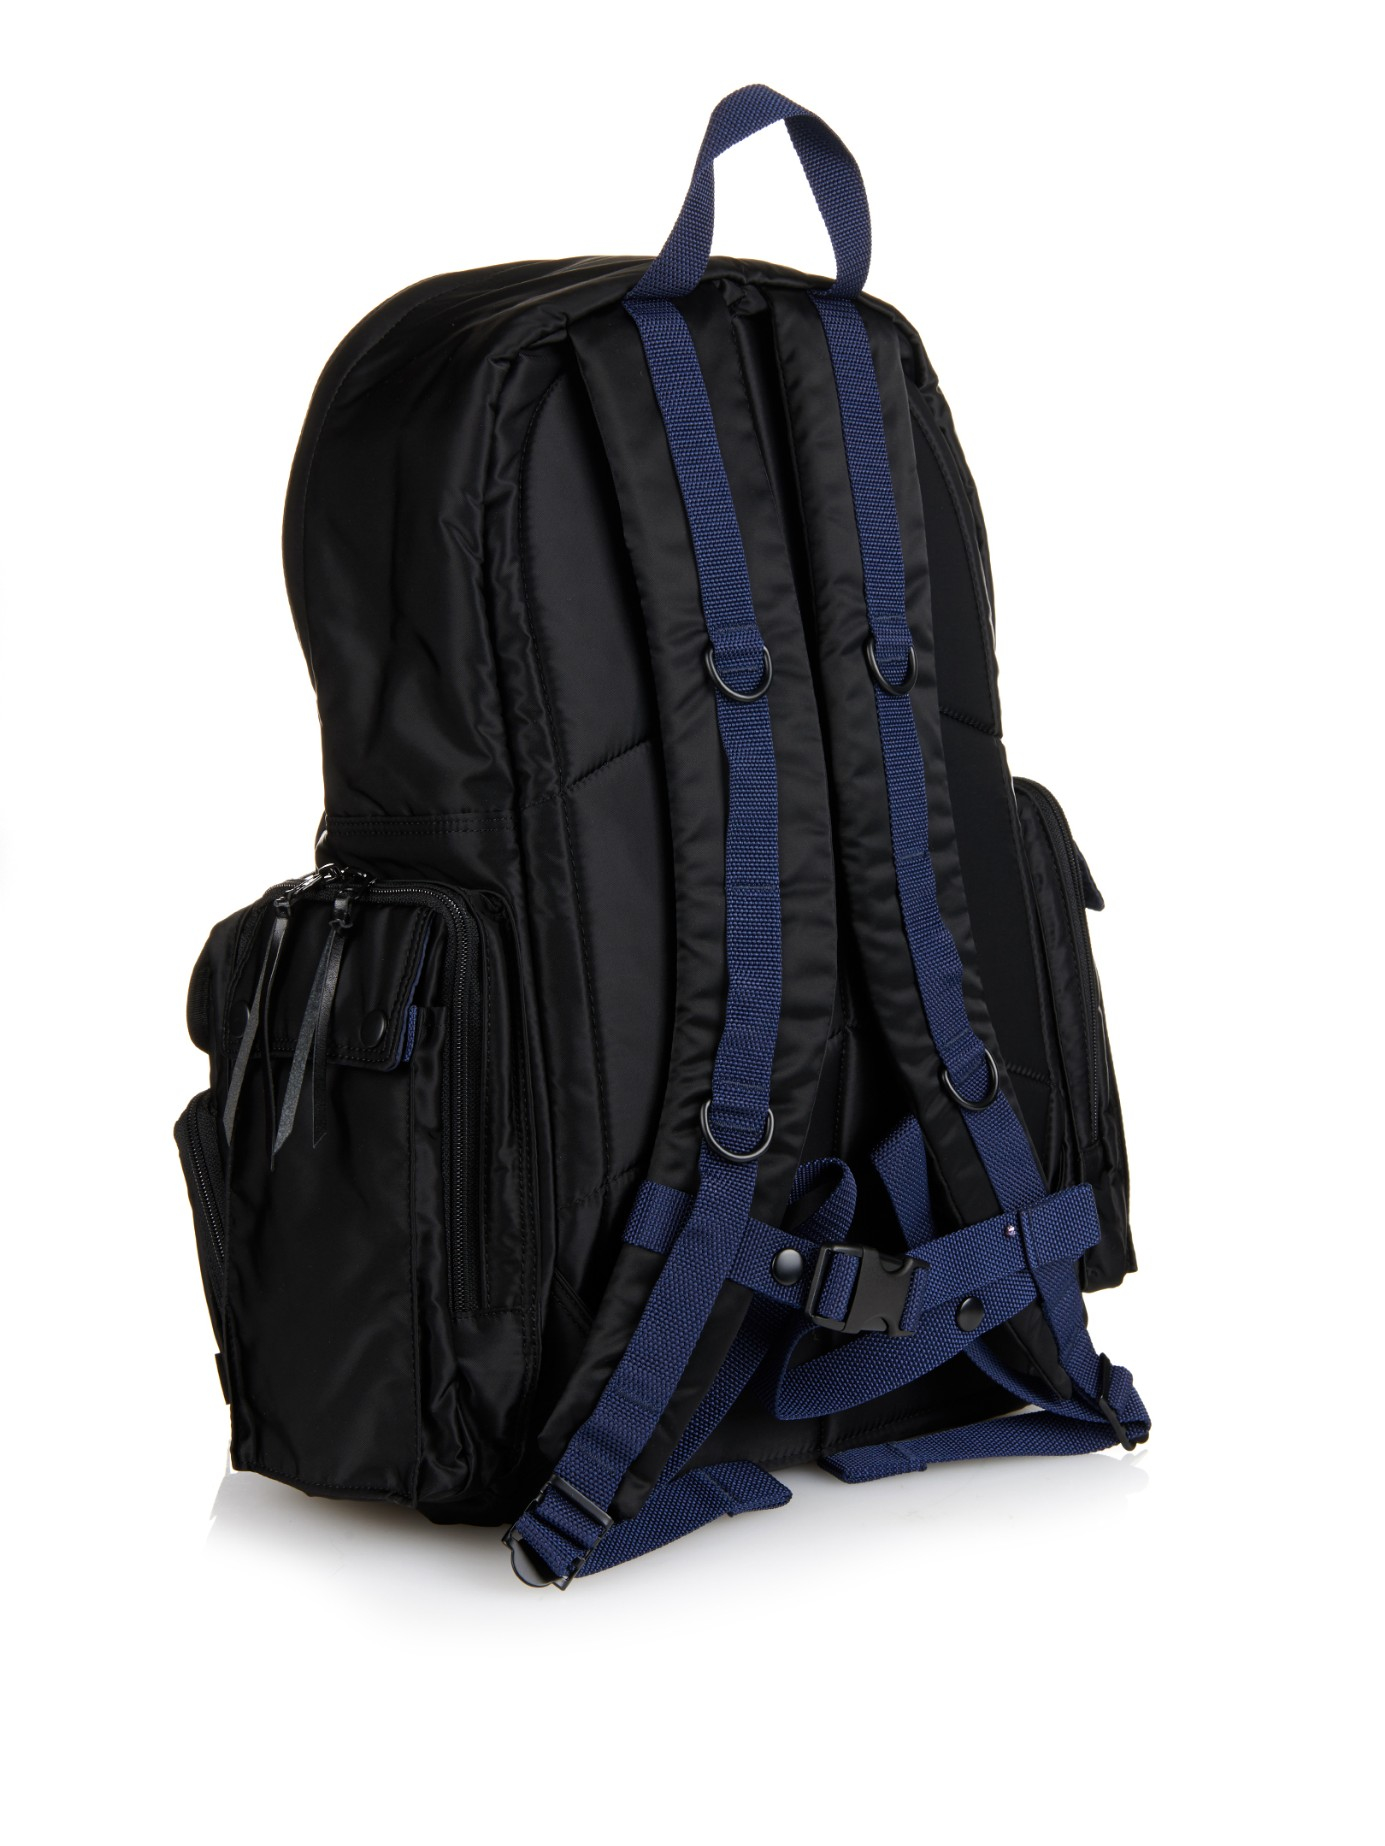 Lyst - Undercover Porter Nylon Backpack in